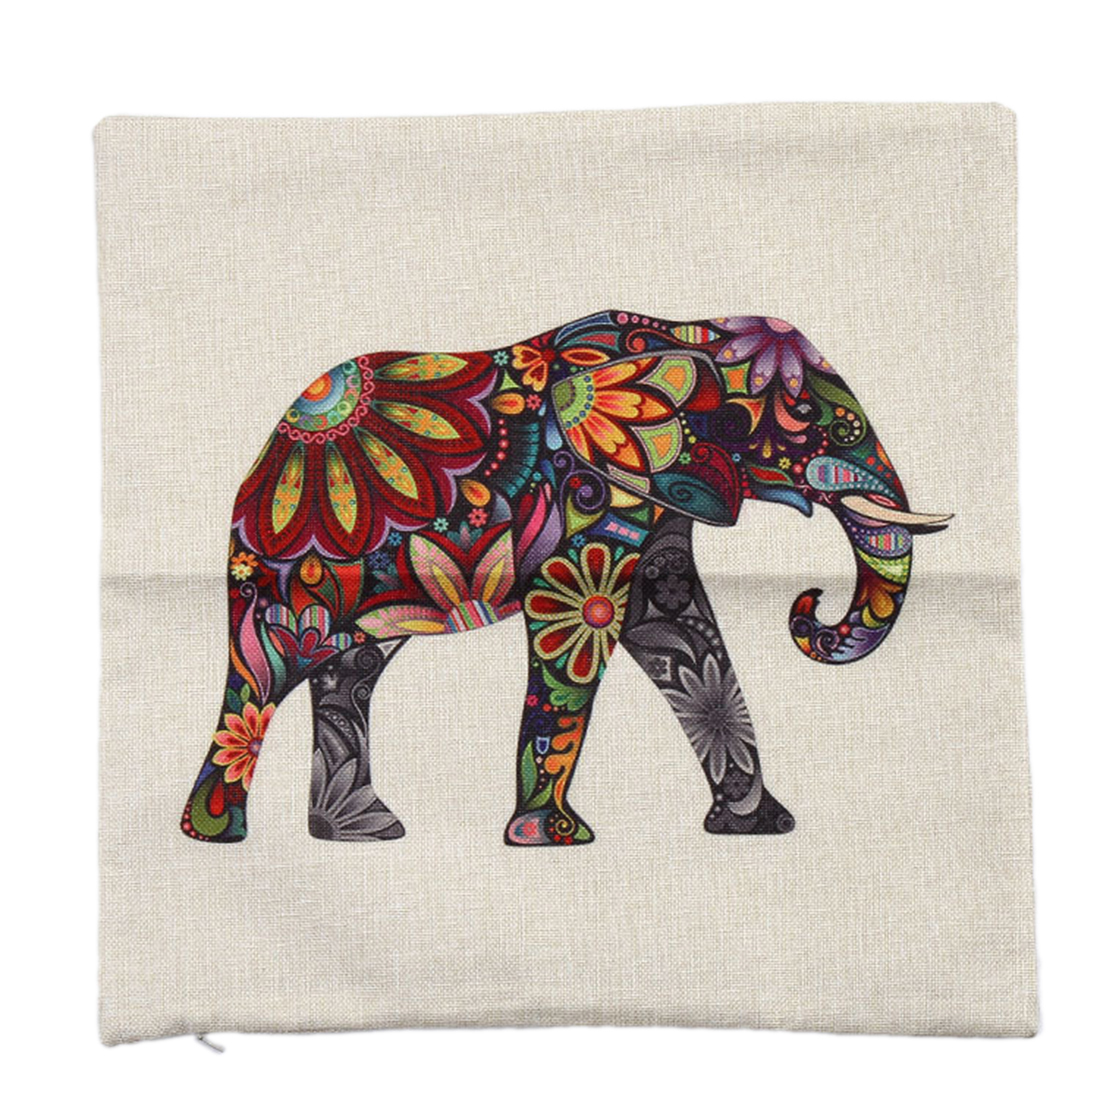 Piccocasa Home Decor Elephant Pattern Zipper Closure Cushion Pillow Cover Case